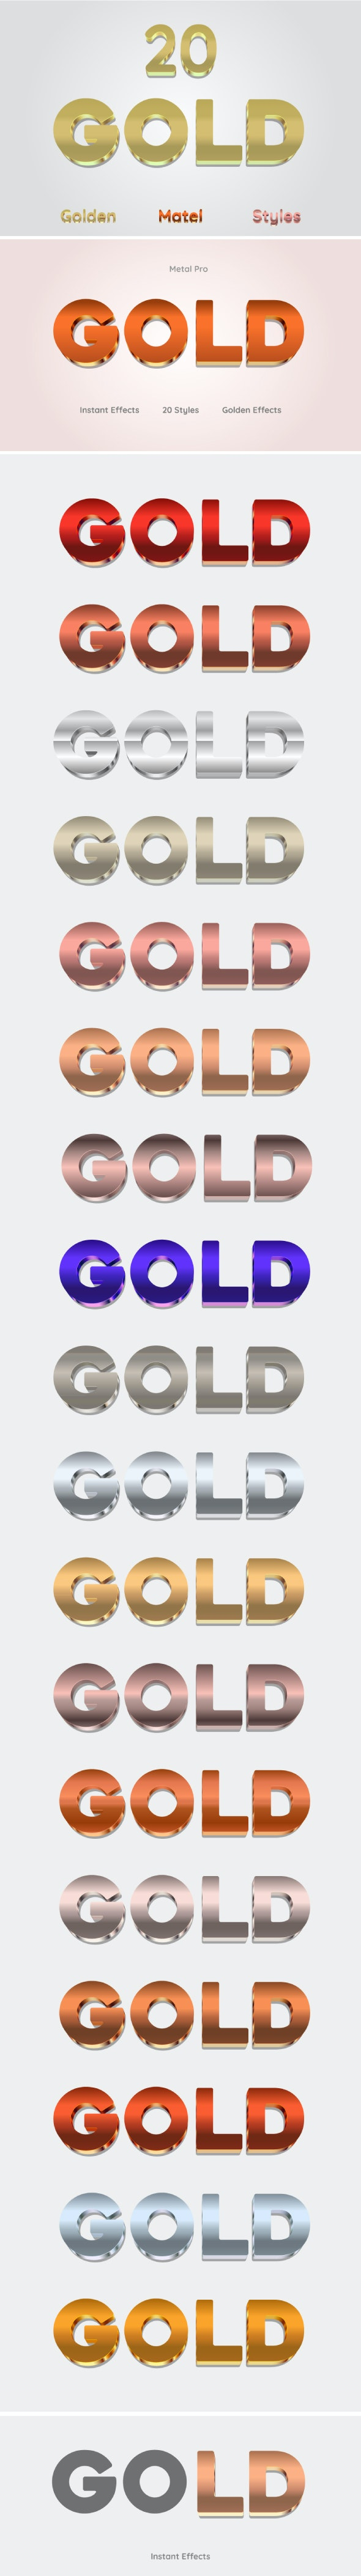 Metal Text Effects For Illustrator - Styles Illustrator